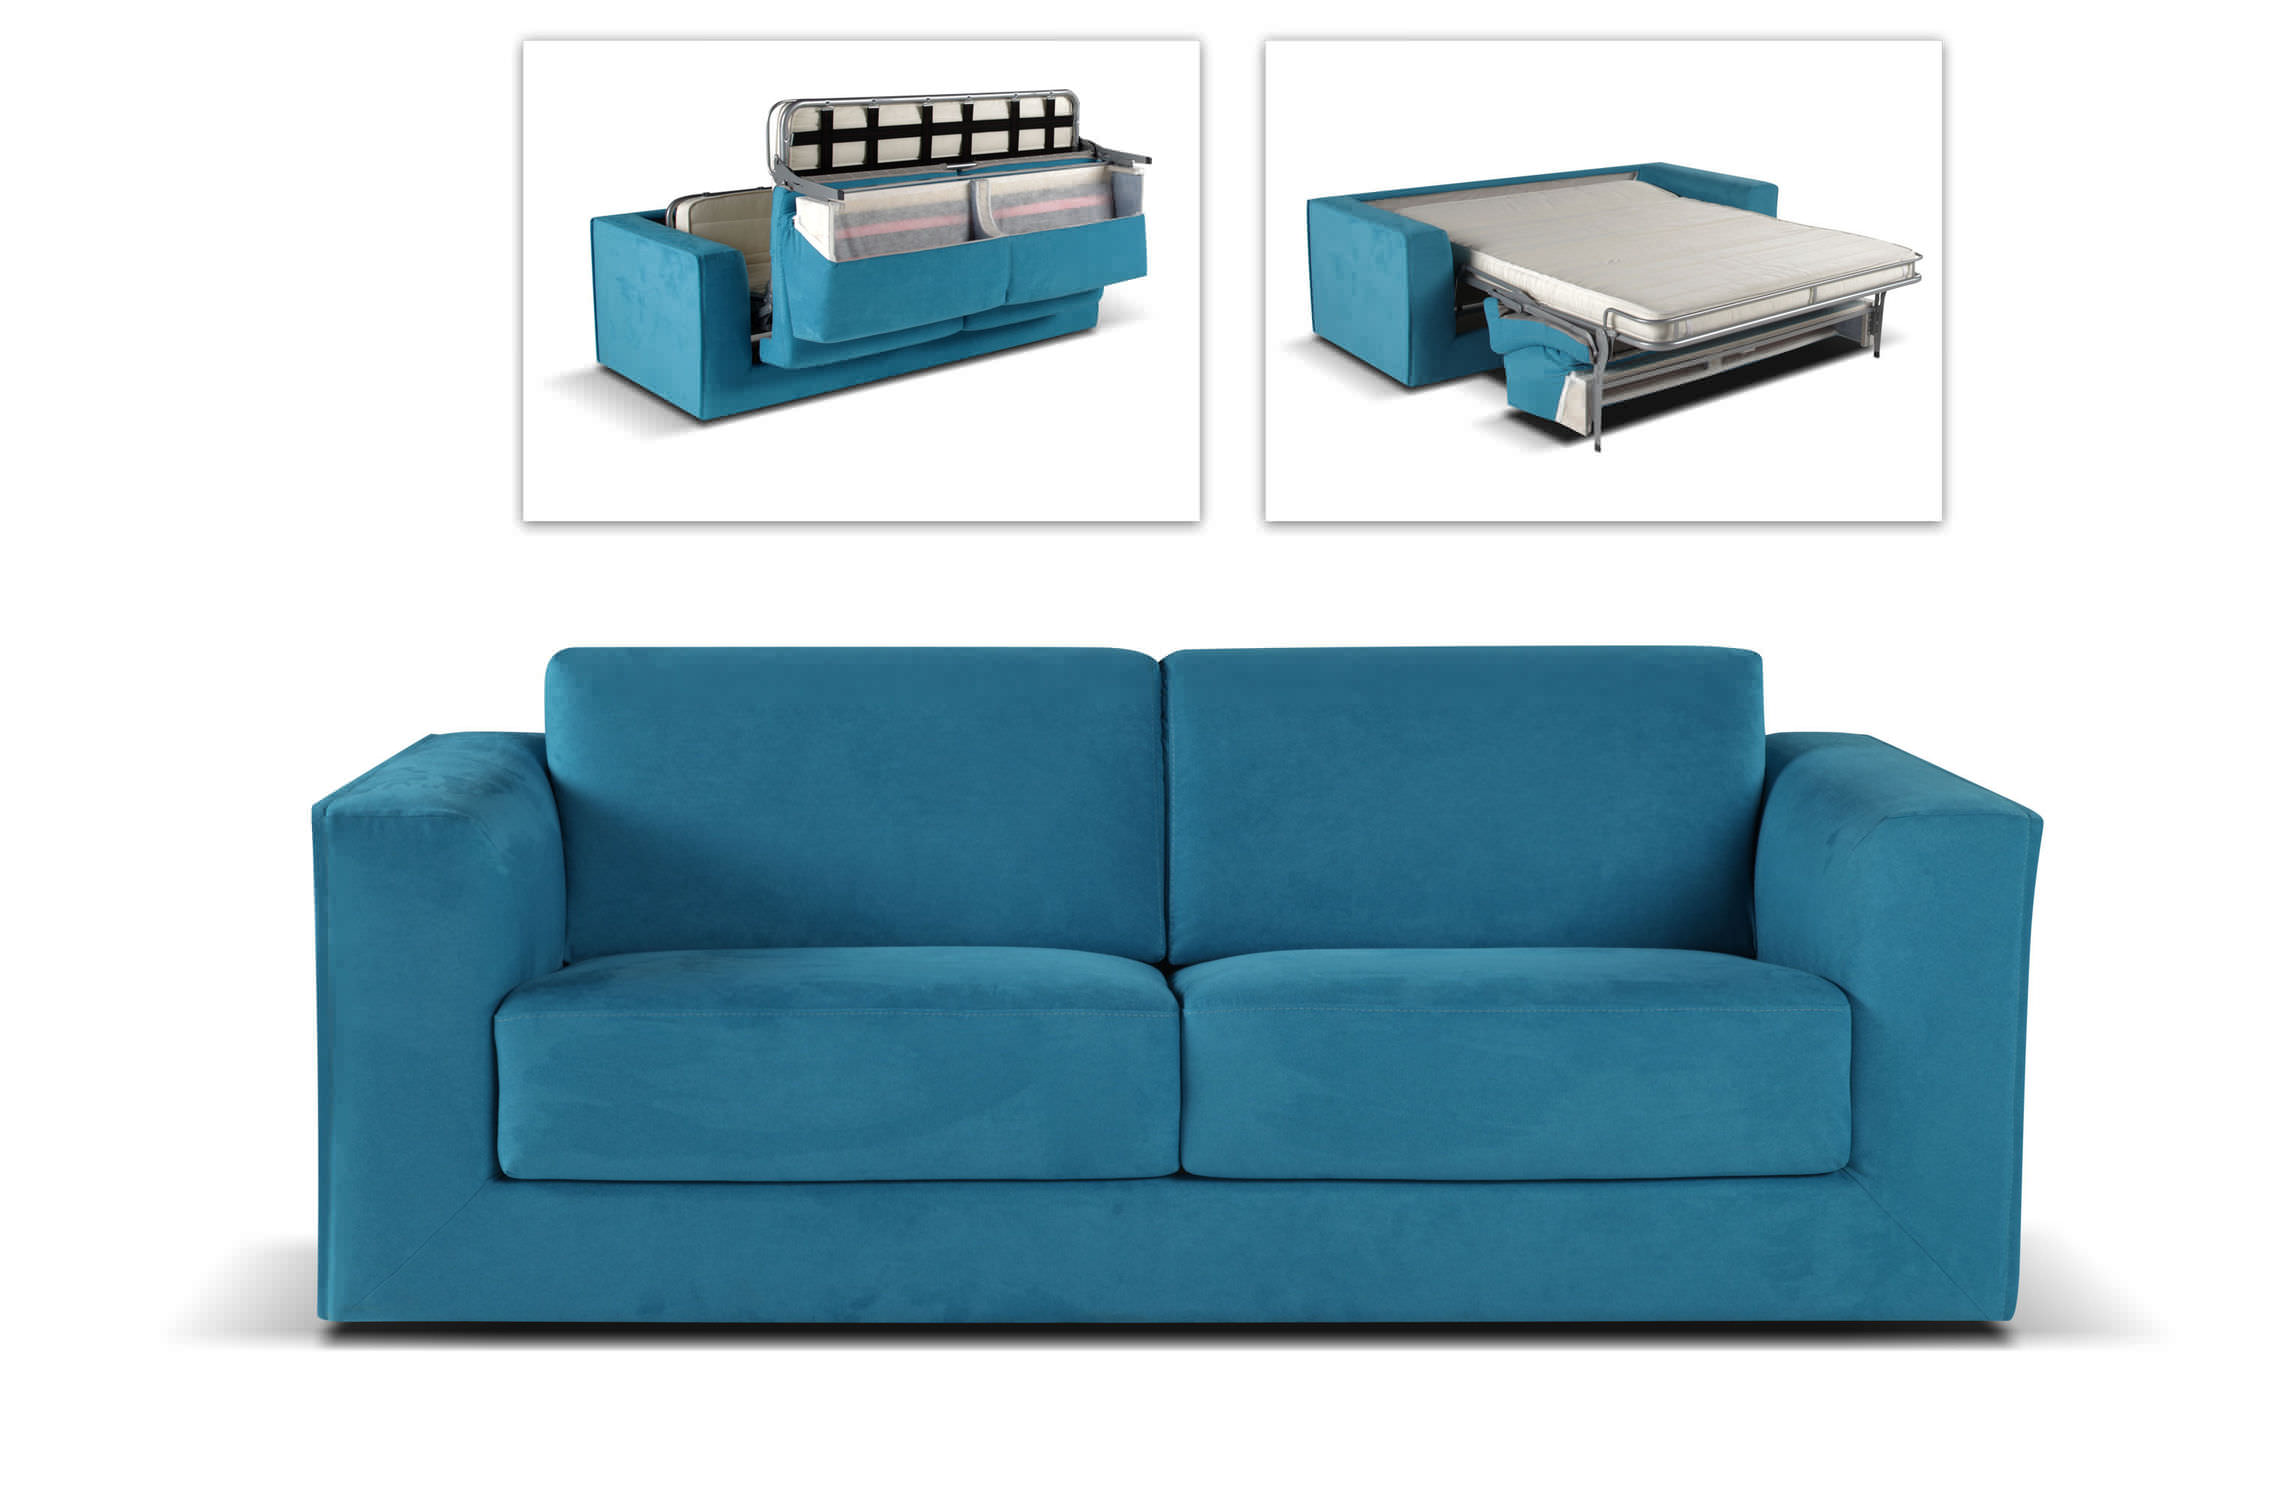 Minimize your interior with couch that turn into bed for stylish and compact furniture homesfeed Couches bed